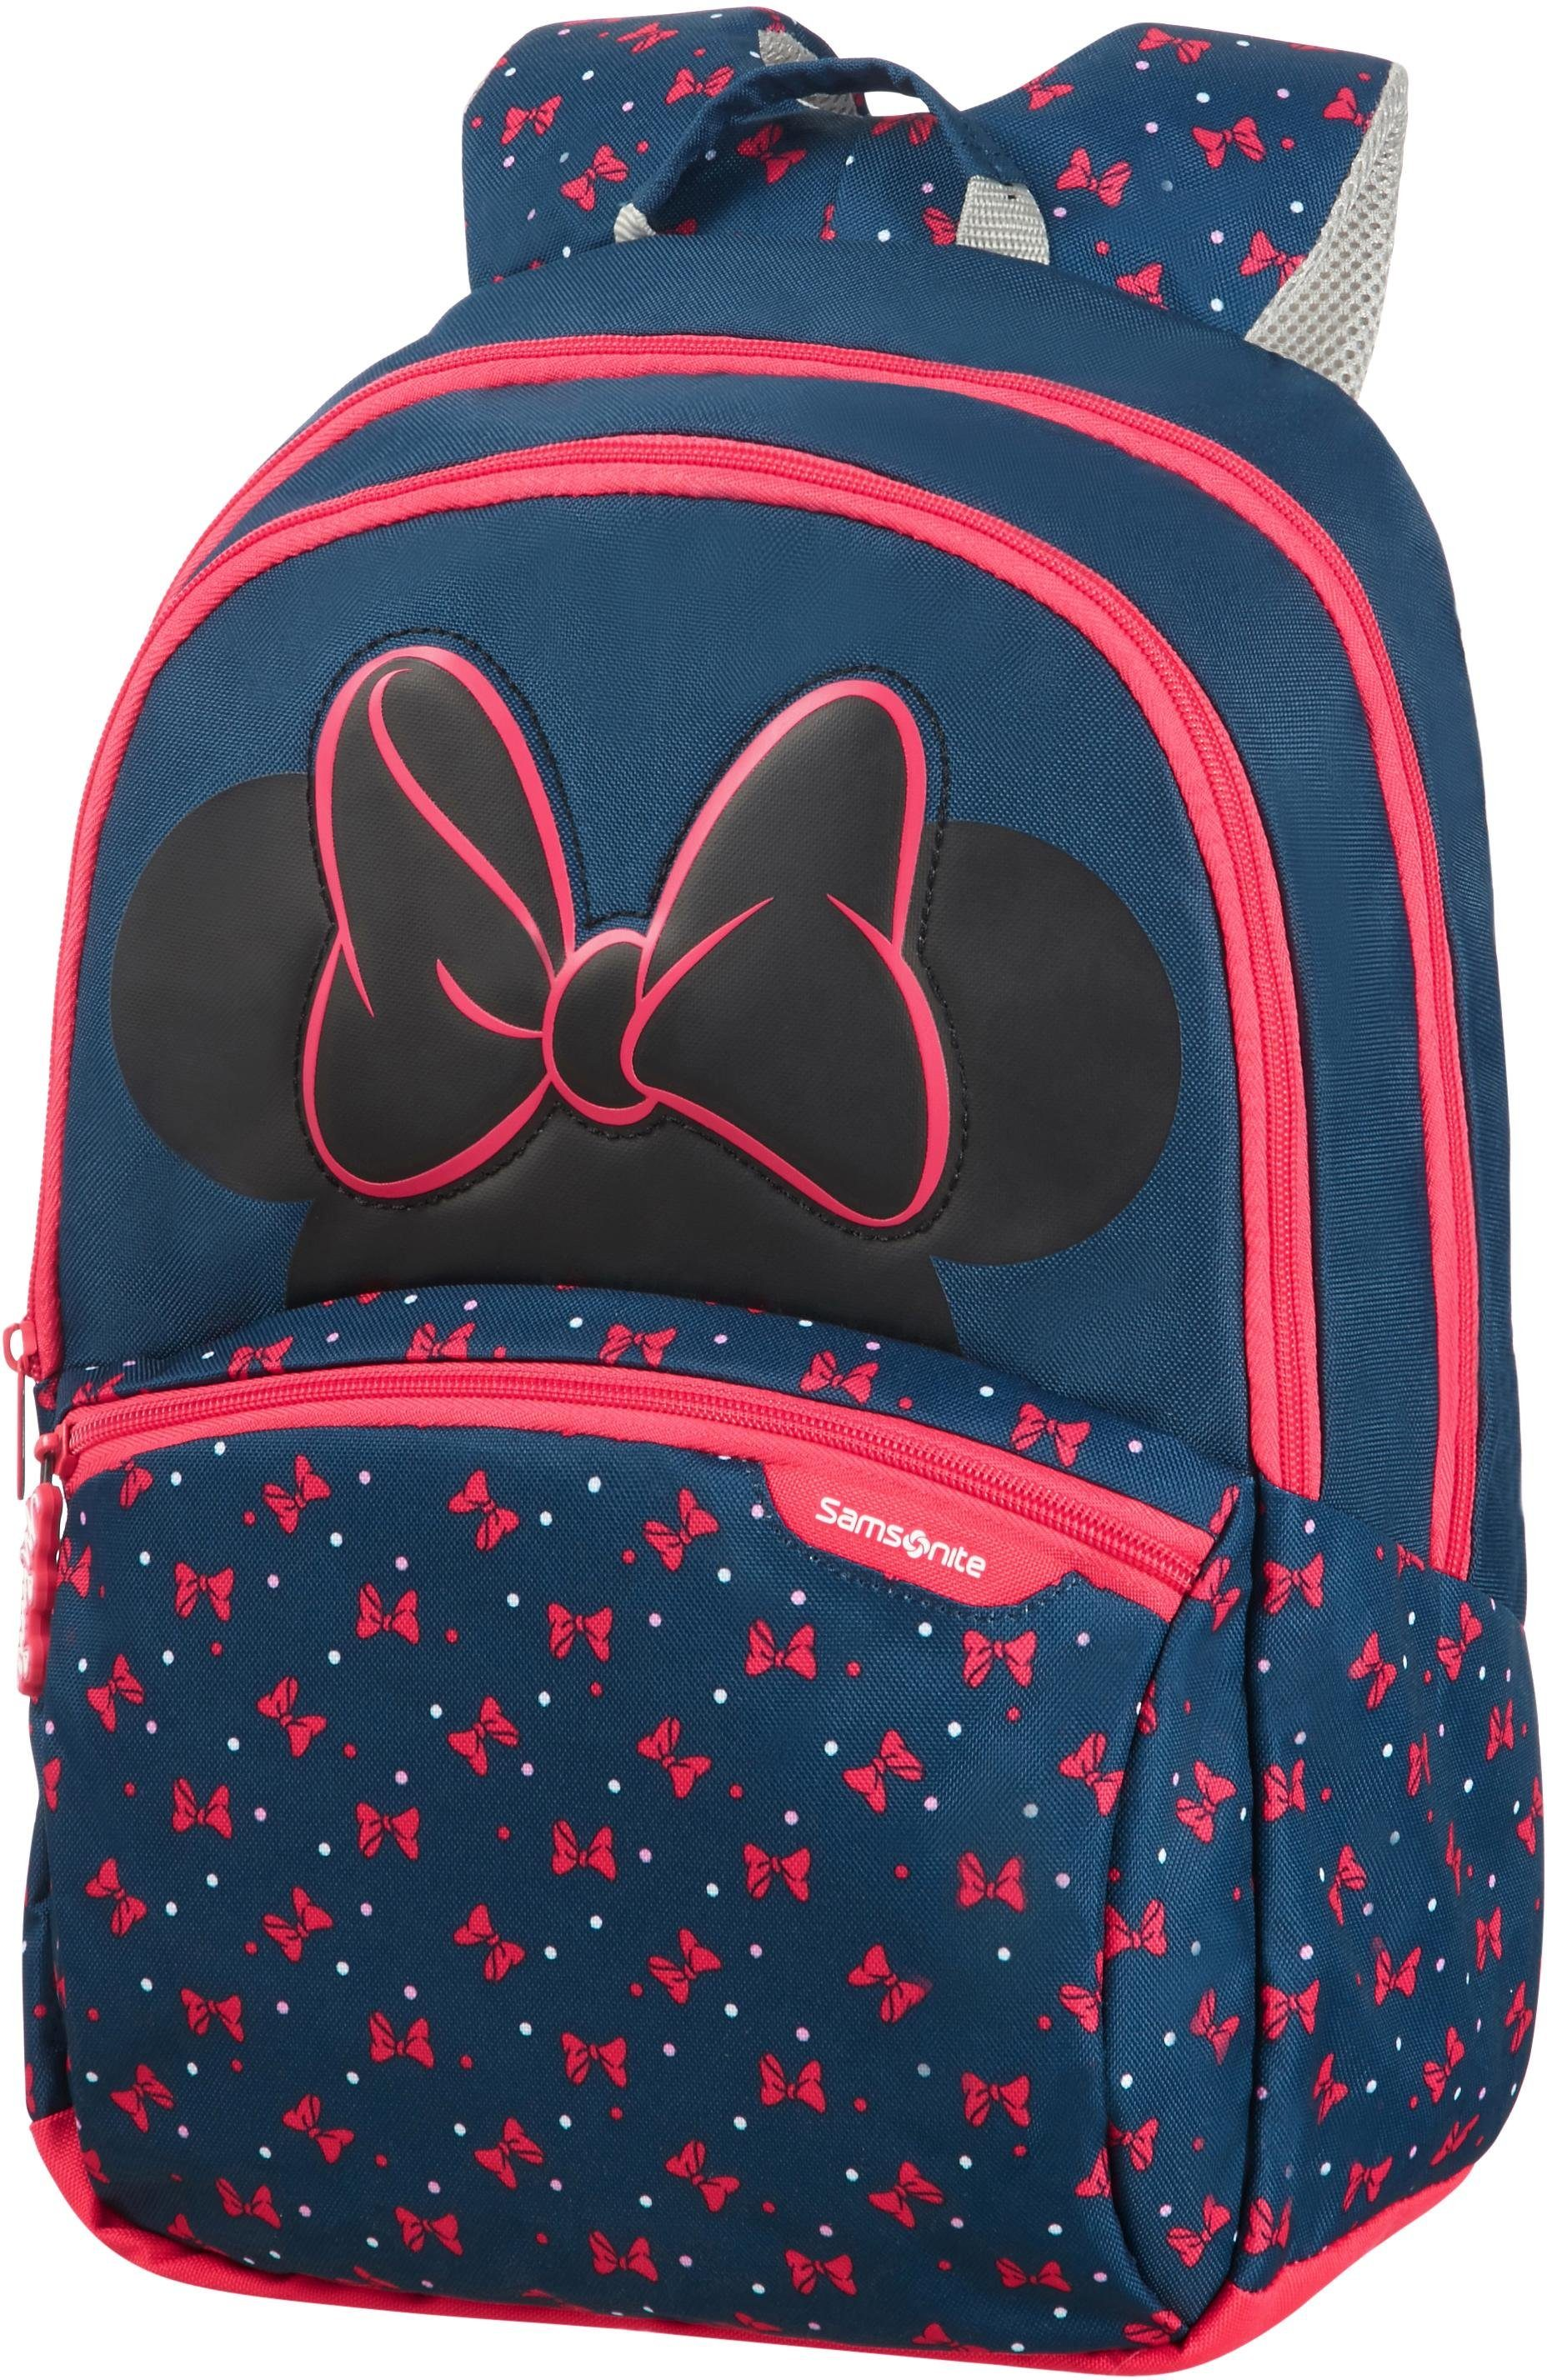 Samsonite Rucksack für Kinder, »Disney Ultimate 2.0, M, Minnie Neon«